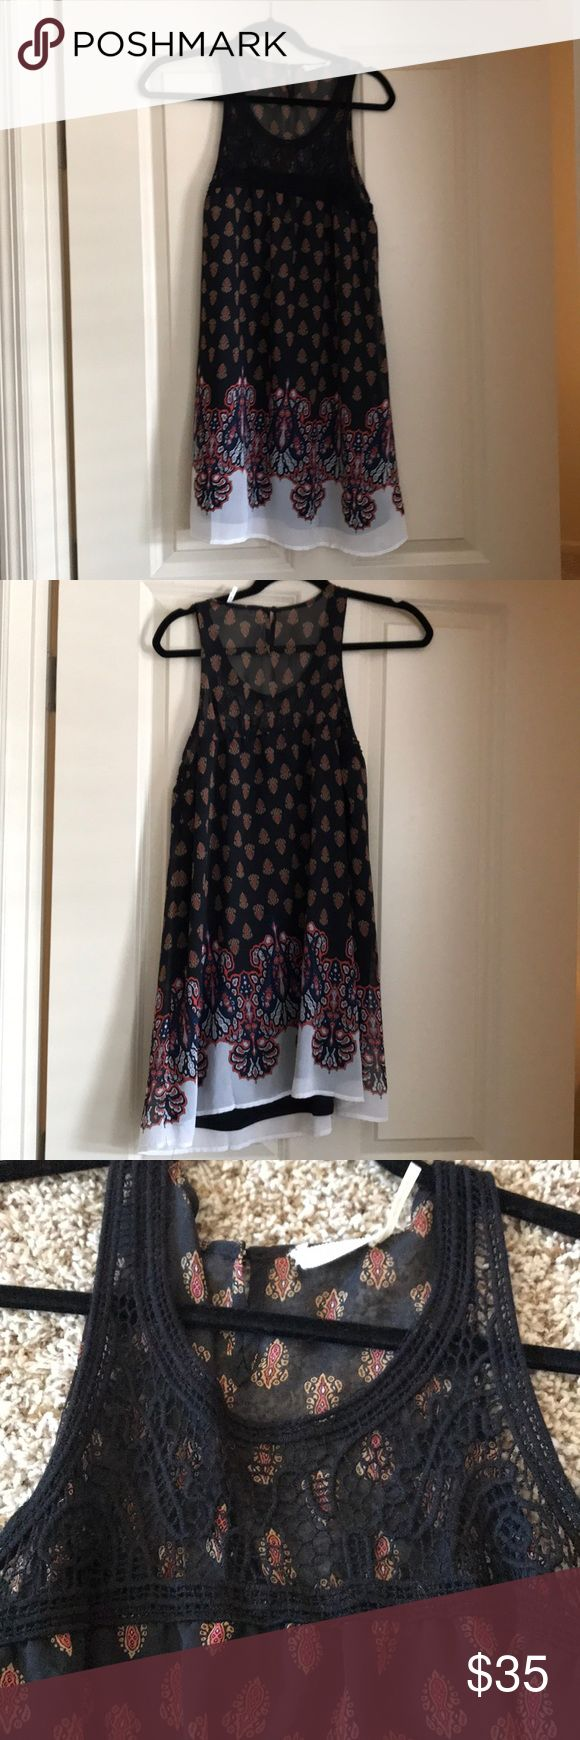 Summer sun dress Sheer sundress with lace overlay on the neck line! Great for barbecues, graduations or just a casual summer dress! It's too long on me! Size small (I'm 5 feet tall)! Dresses Mini